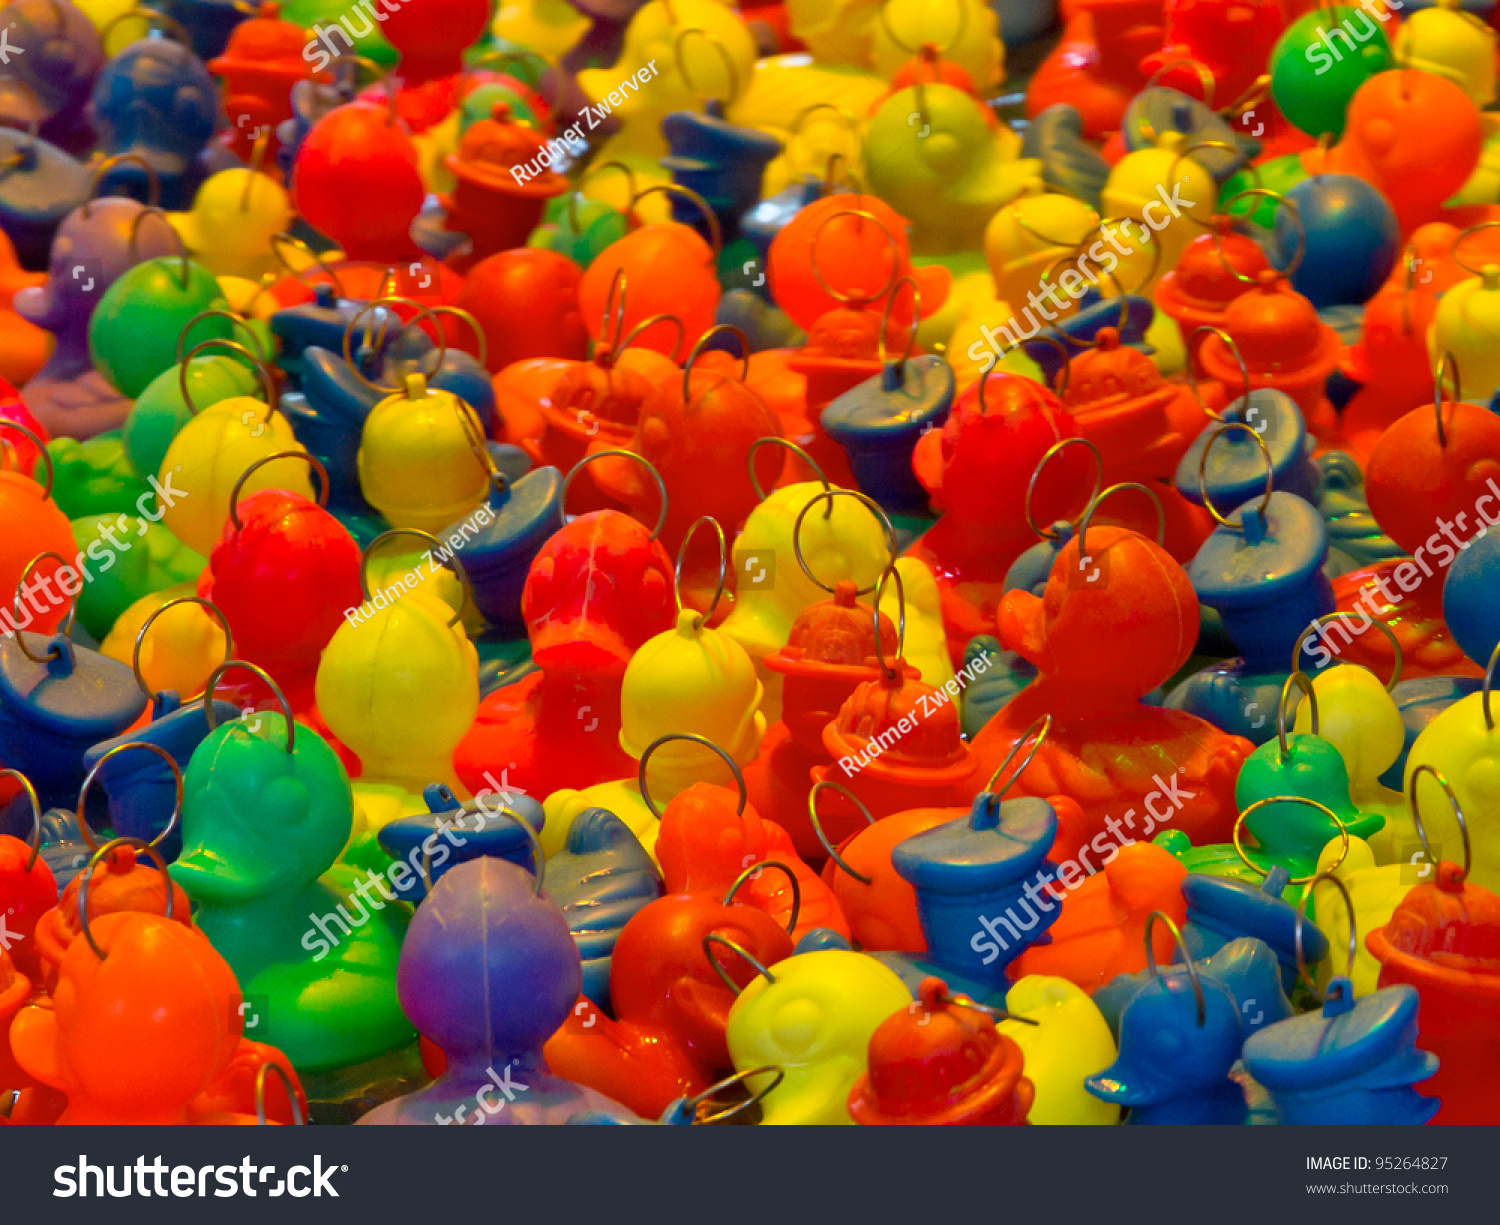 Background of rubber ducks fishing game on an arcade stock for Fishing for ducks